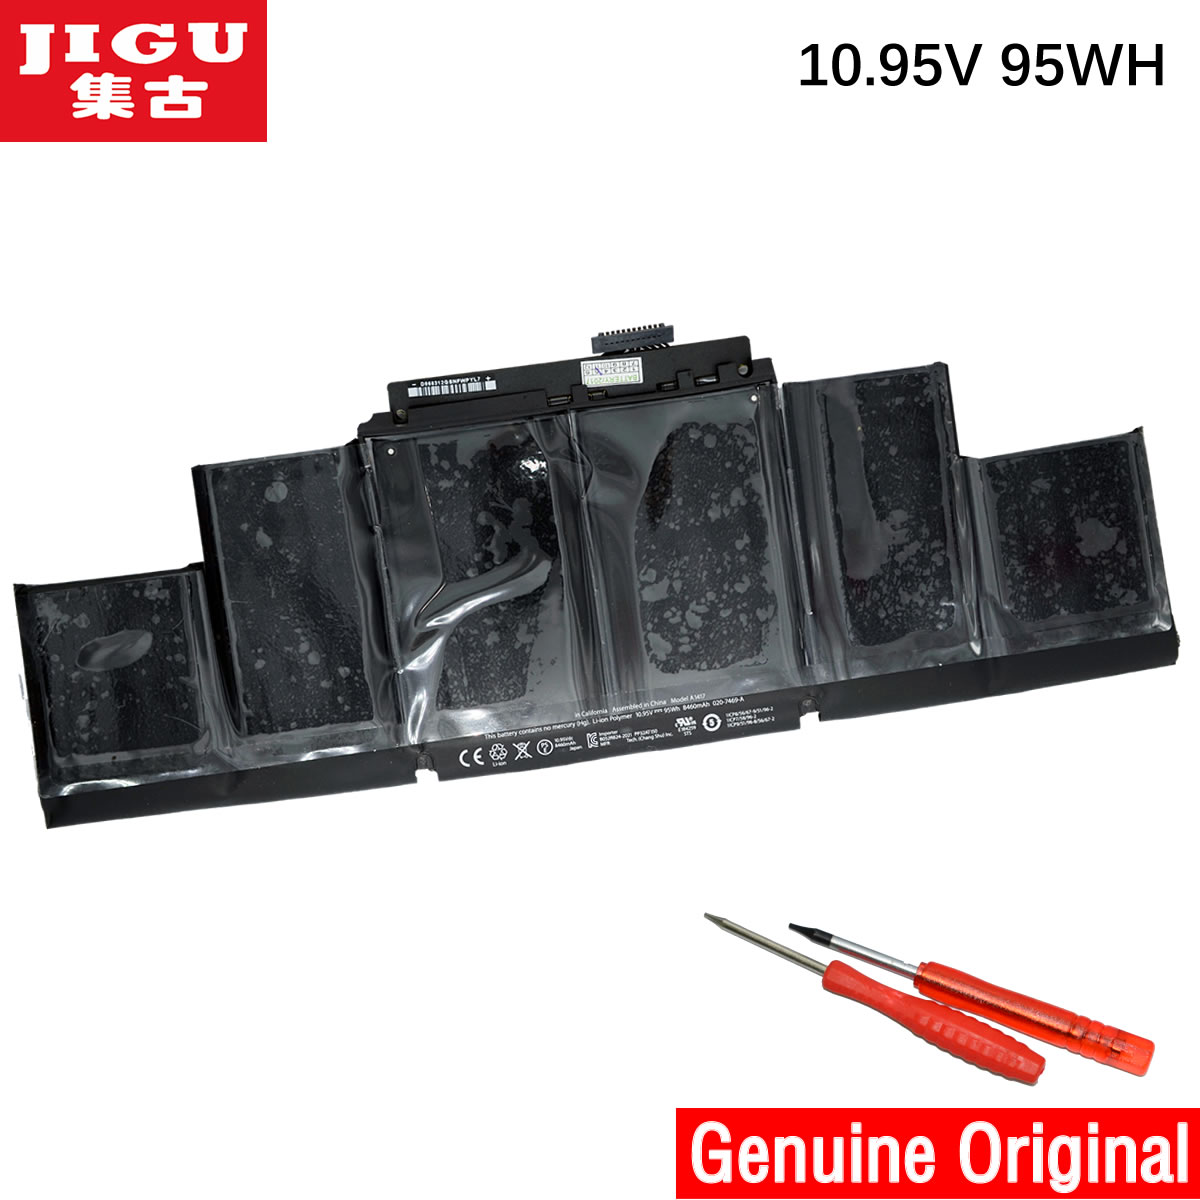 JIGU Original <font><b>Batterie</b></font> für Apple A1417 A1398 (2012 Frühen-2013 Version) für <font><b>MacBook</b></font> <font><b>Pro</b></font> Retina <font><b>15</b></font>